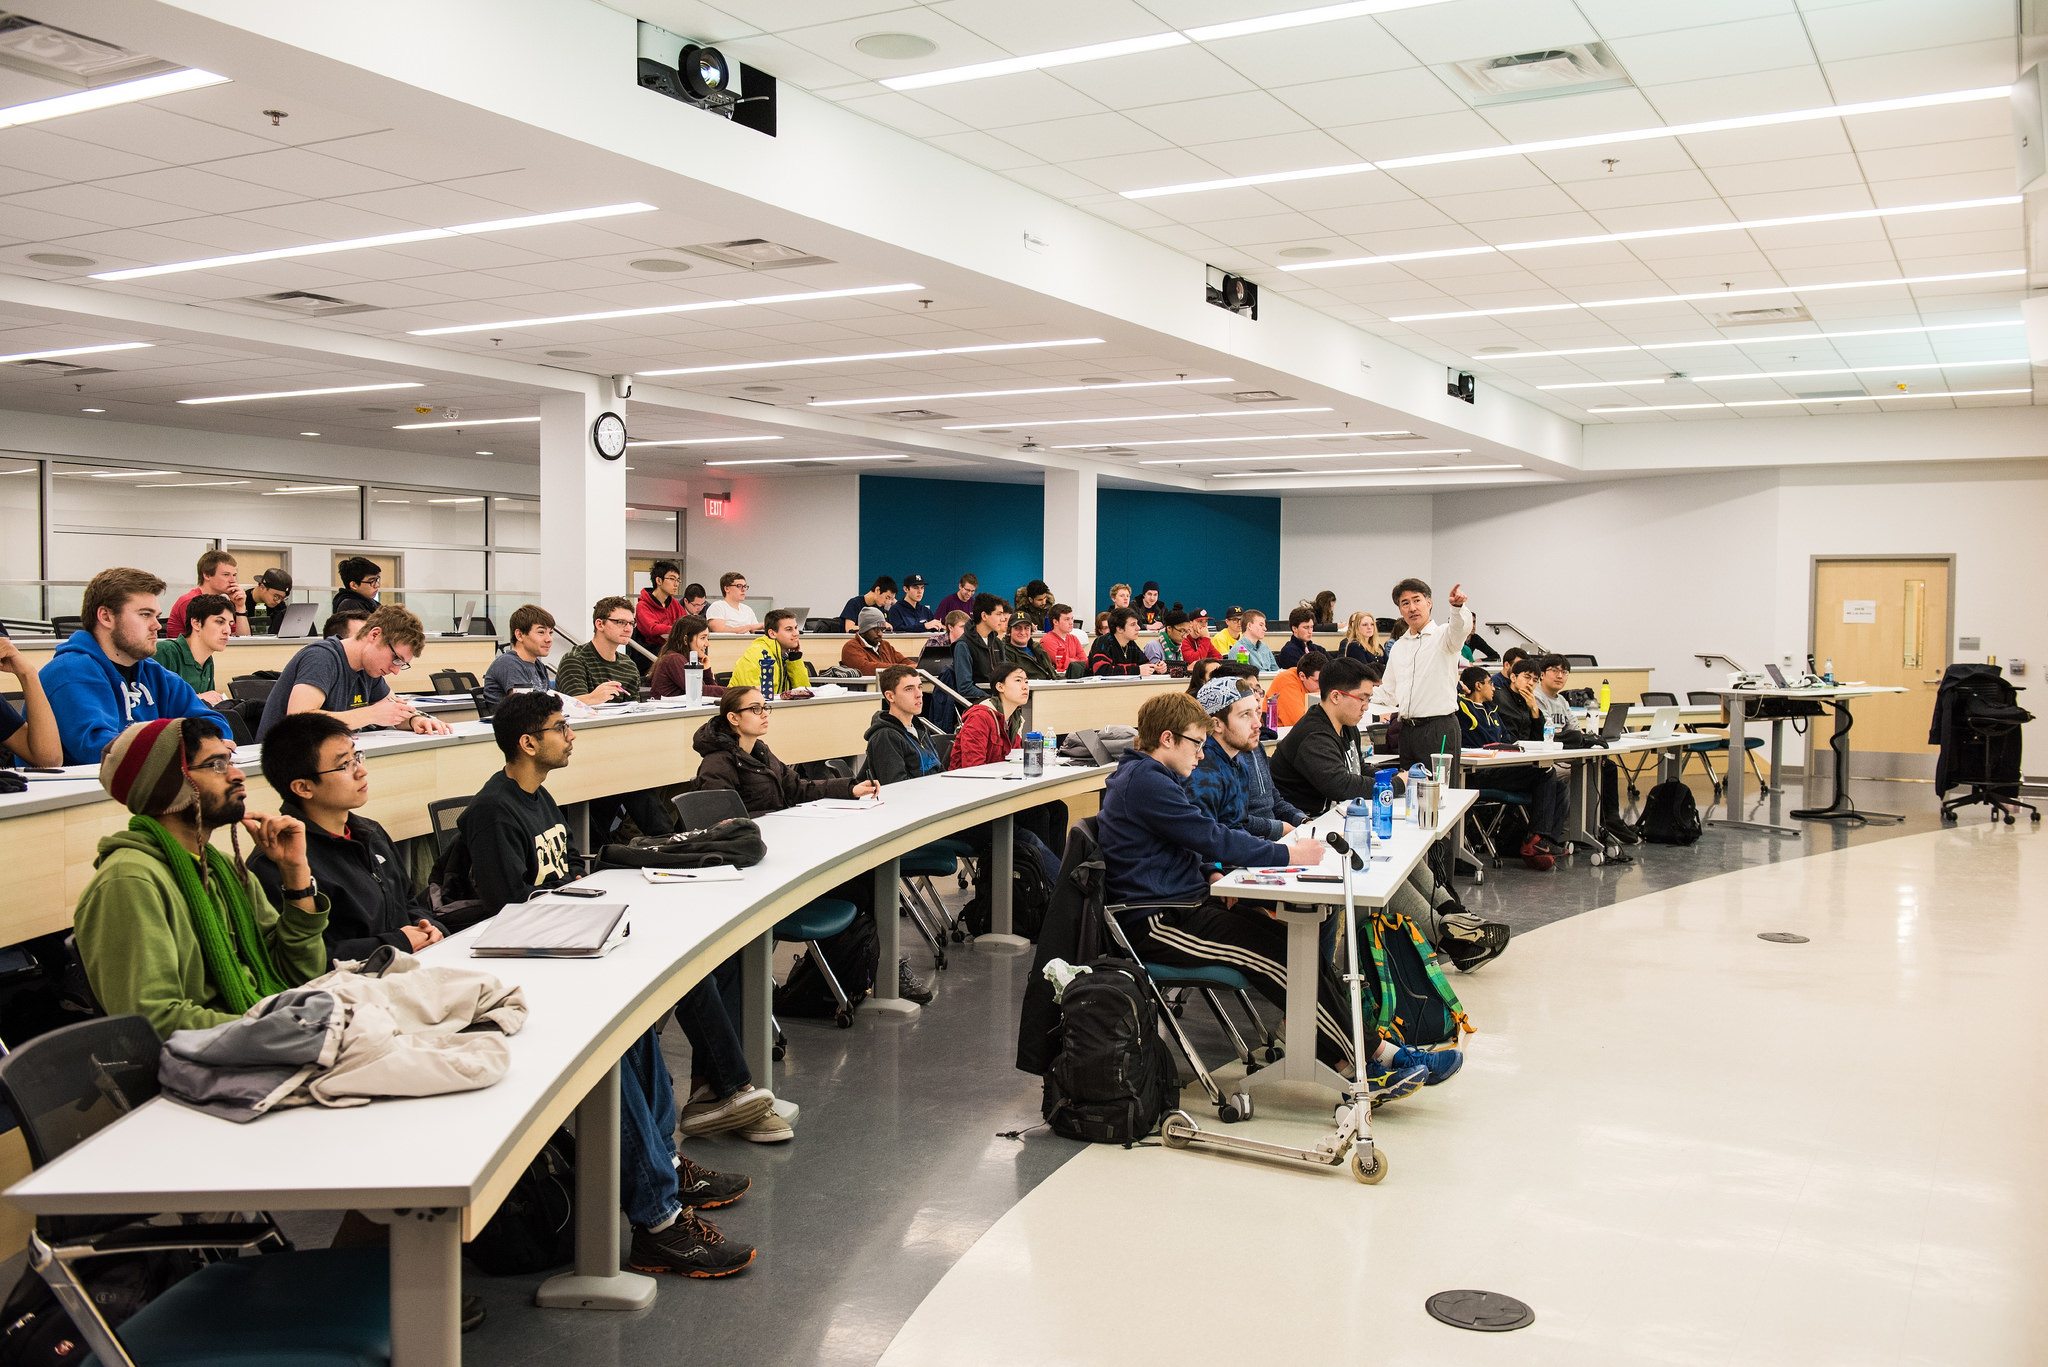 2/17/16 Students and faculty collaborating in shared spaces in the new GG Brown addition. Image credit: Austin Thomason, Michigan Photography